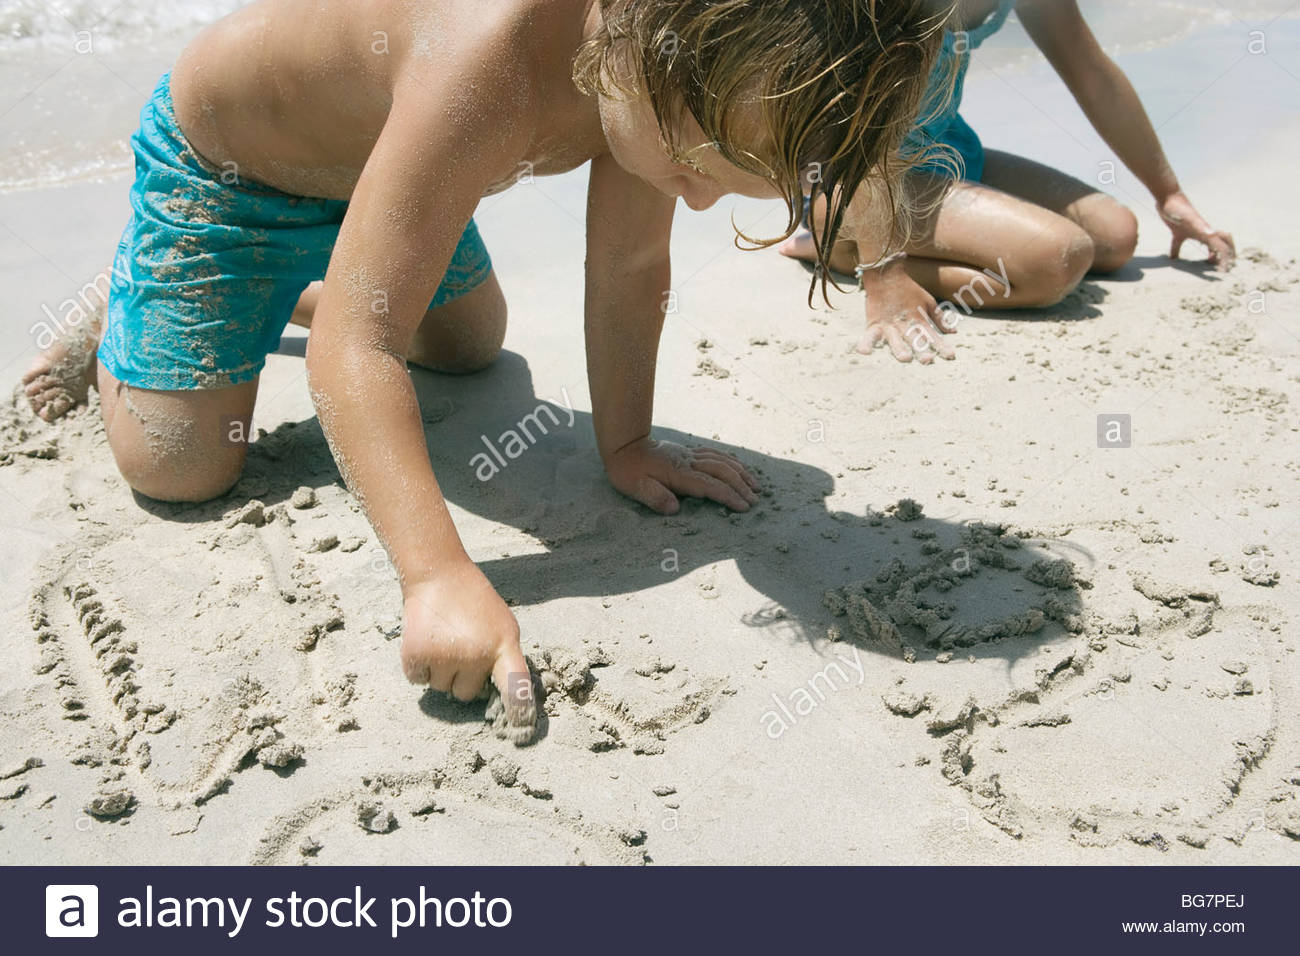 Boy and girl writing in sand on beach - Stock Image